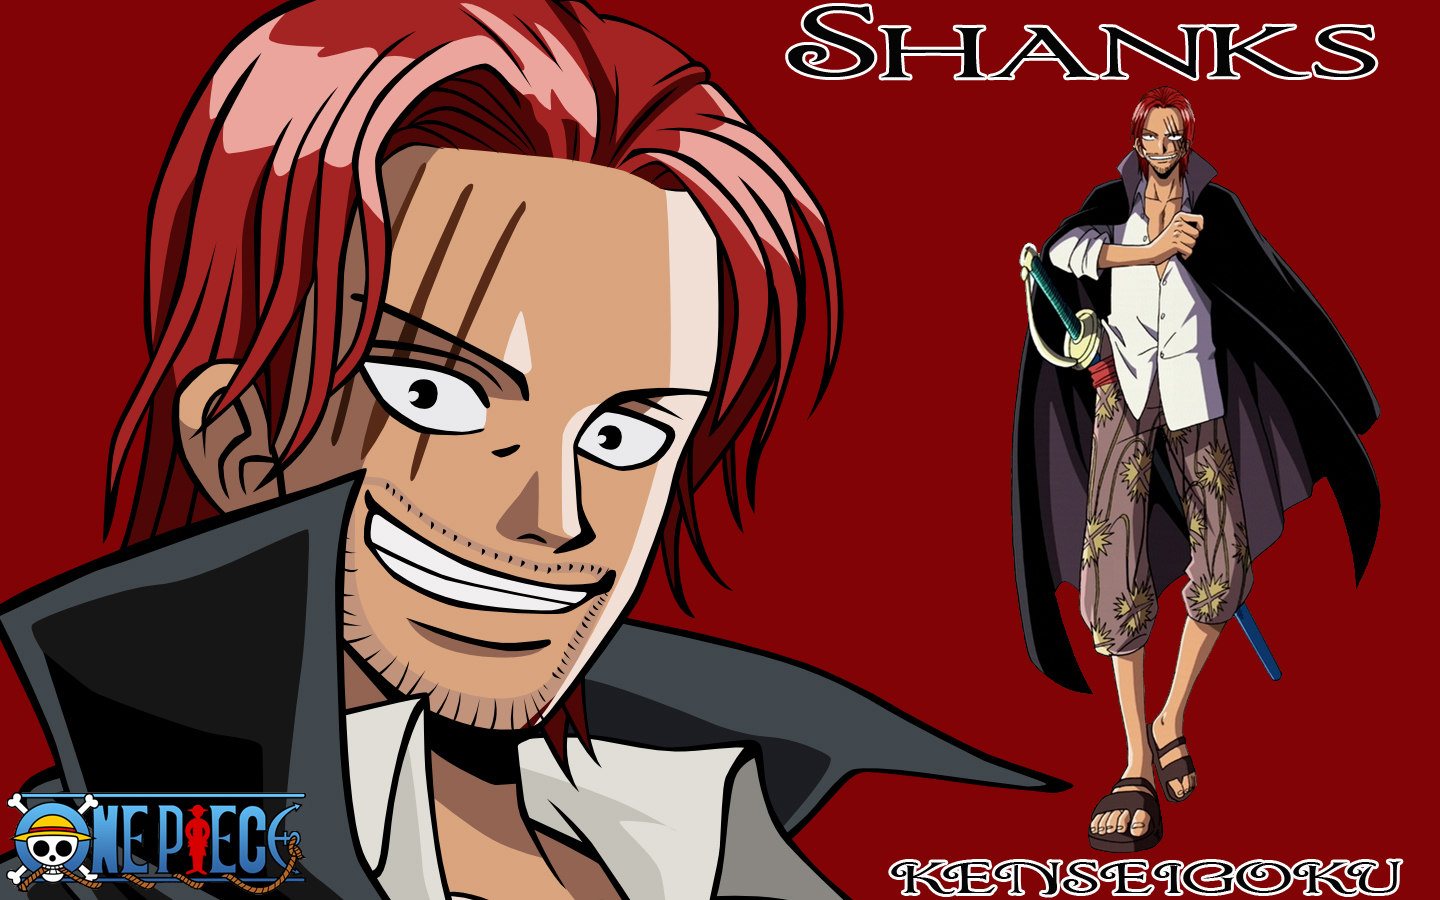 shanks online dating About me: my life is simple, just the average widow (suicide 14 years ago) going thru life looking for a friend and more i am tall, big, very beautiful, walk with a limp, and have buck teeth.